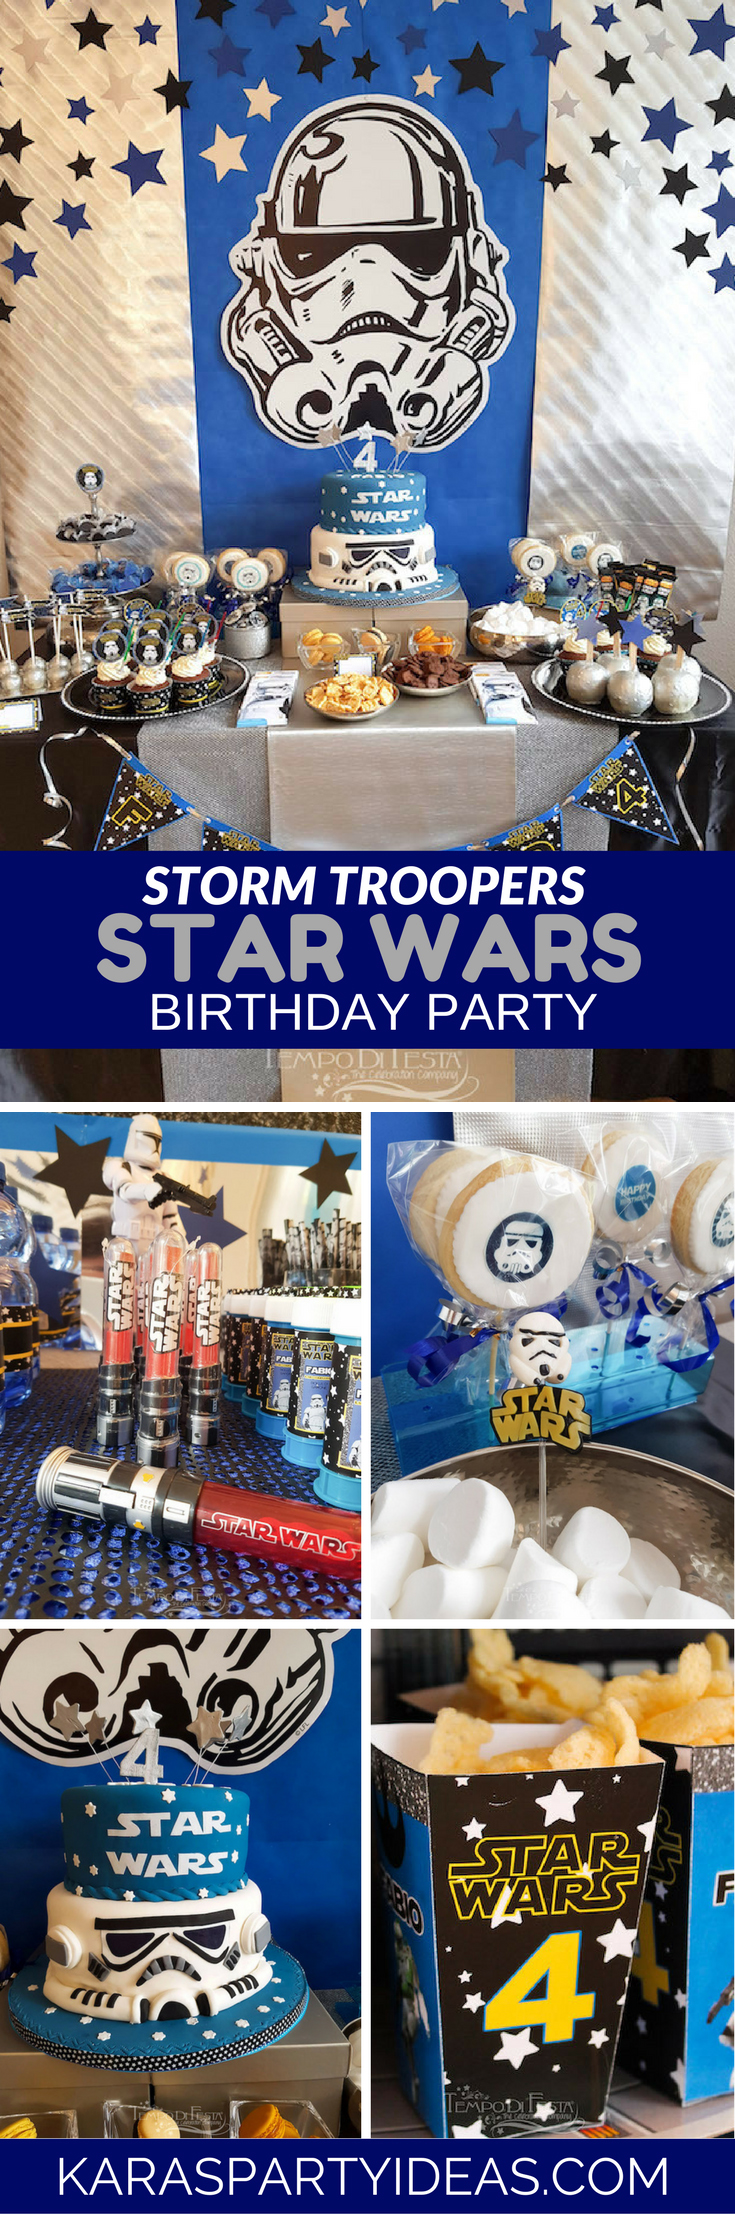 Storm Troopers Star Wars Birthday Party via Kara's Party Ideas - KarasPartyIdeas.com